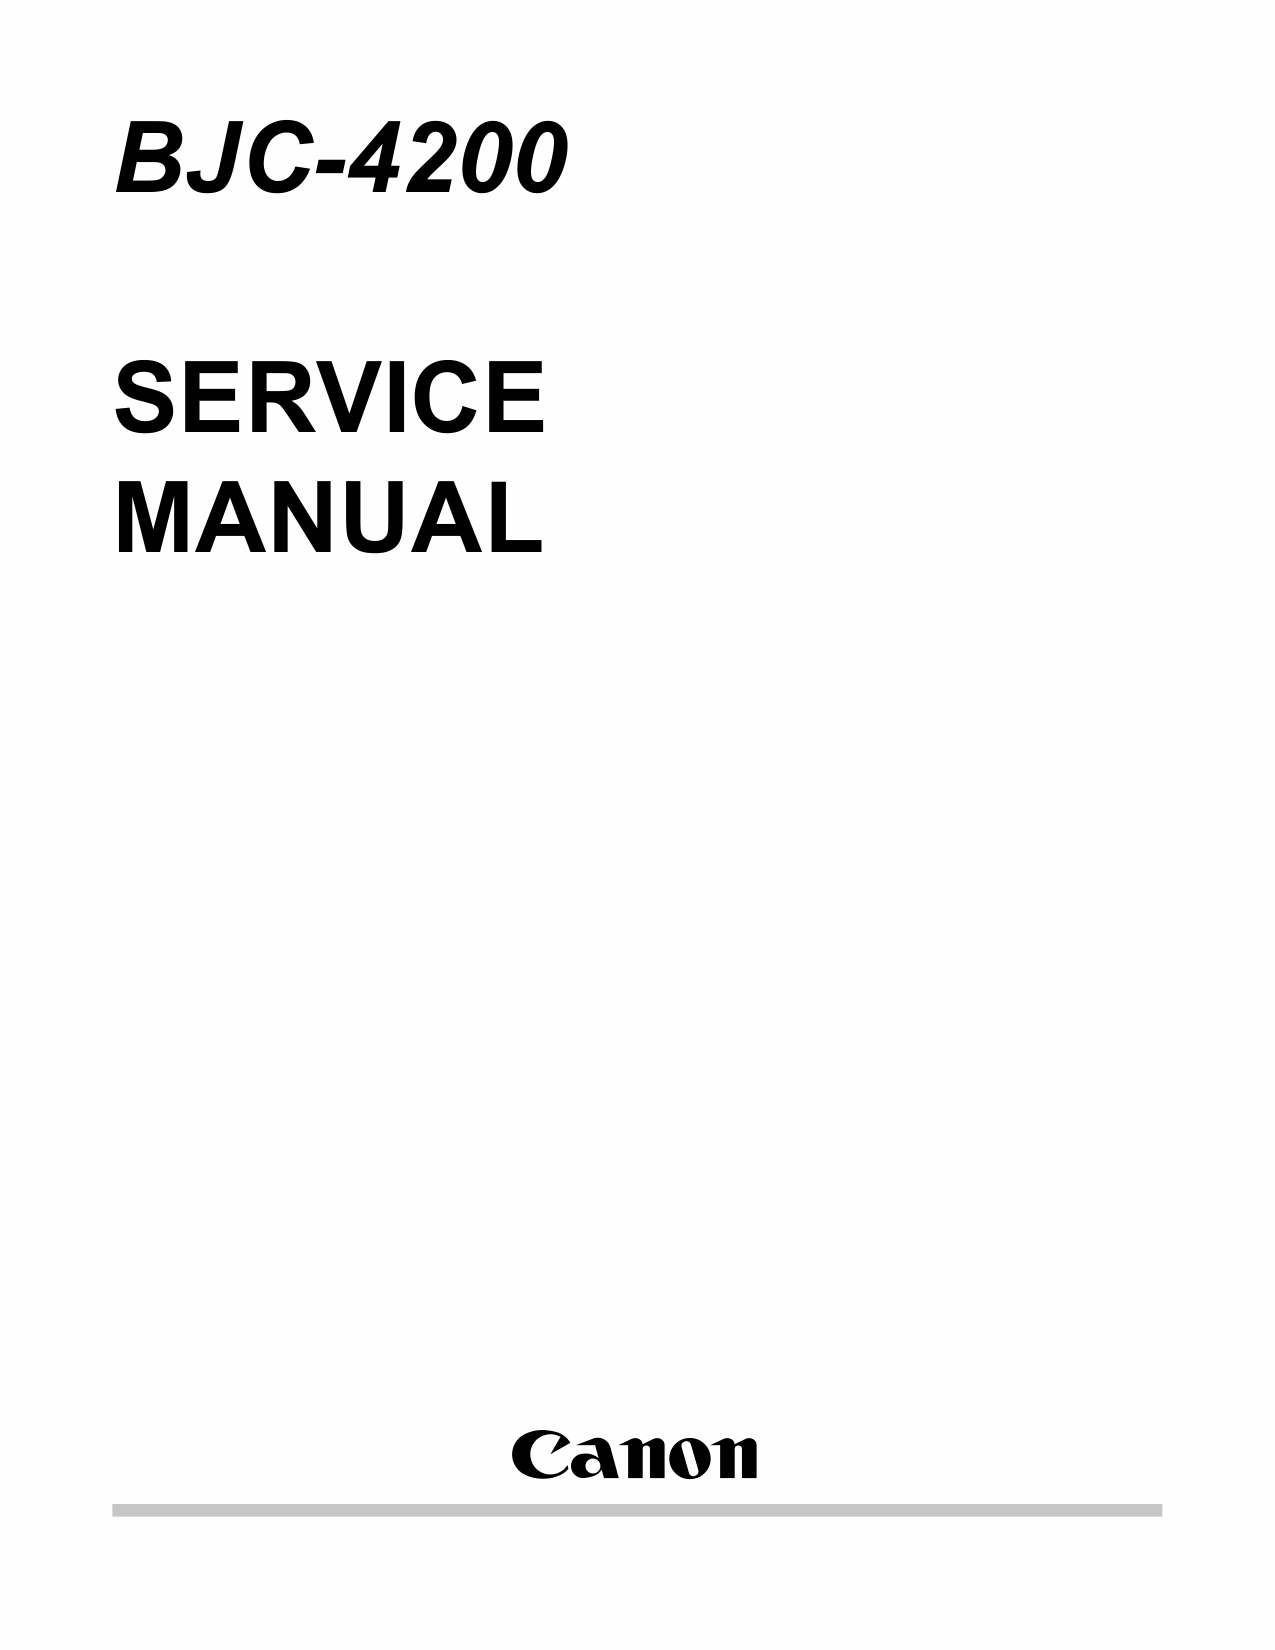 Canon BubbleJet BJC-4200 Service Manual-1